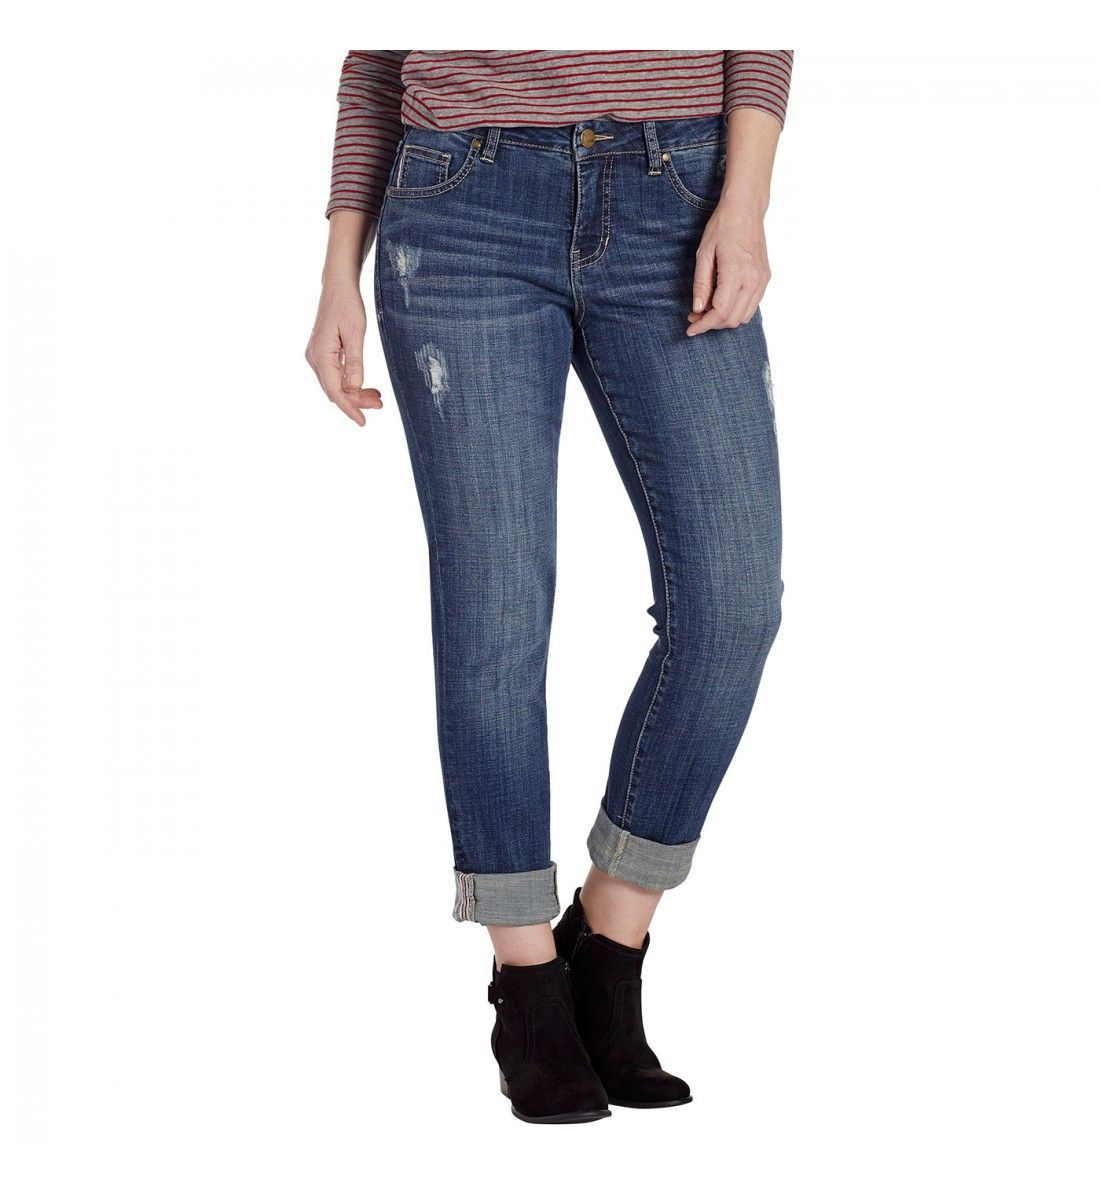 7c0c3f7868f29 JAG JEANS Carter Girlfriends Jeans